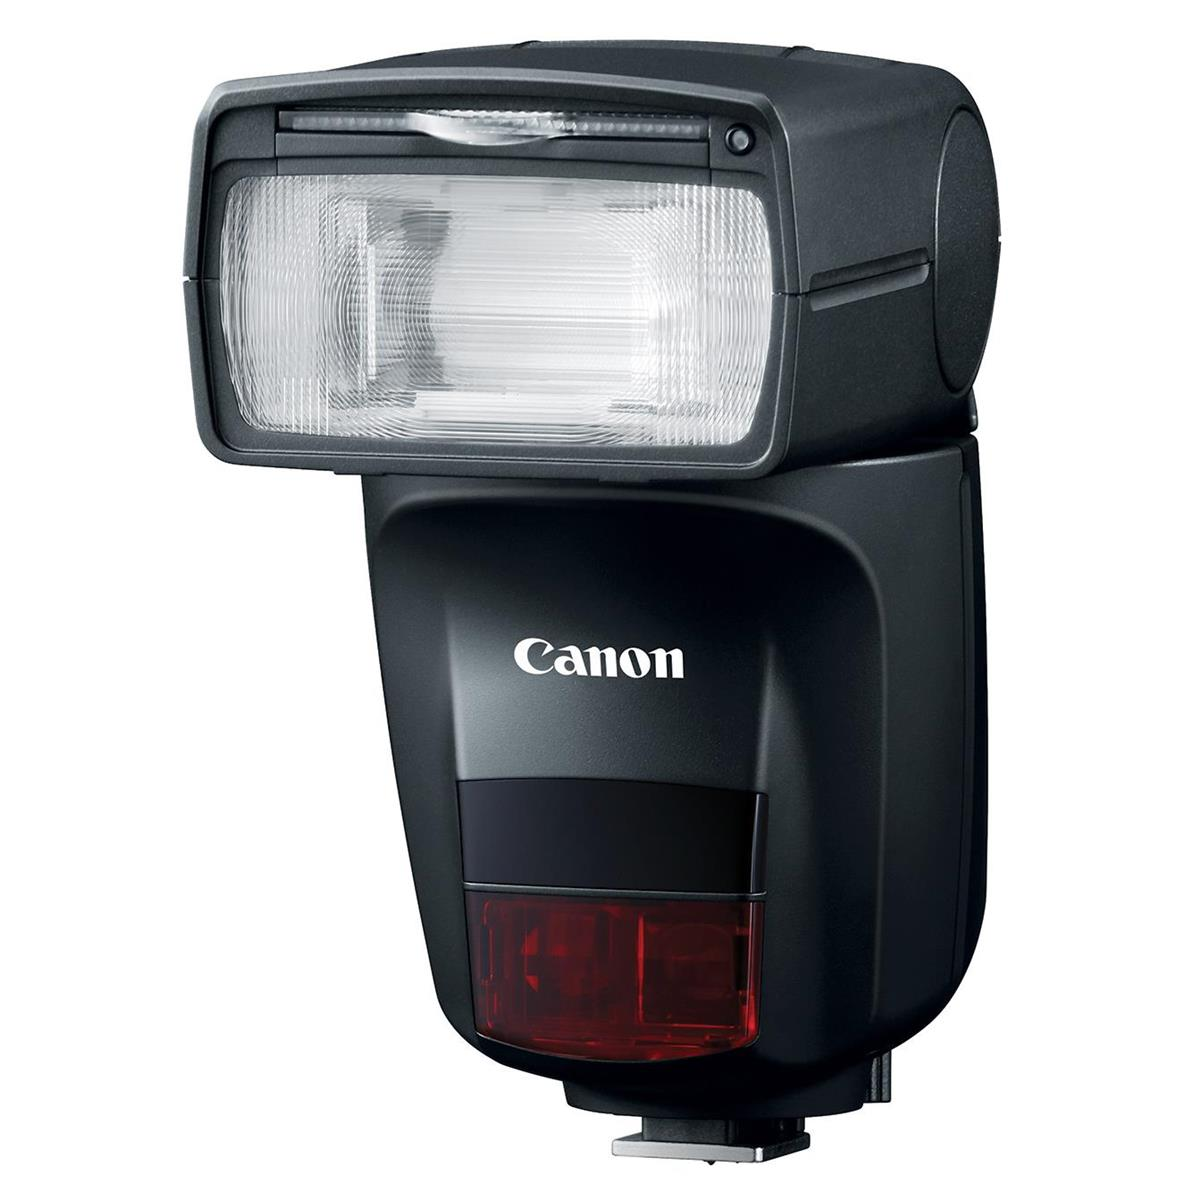 Photographer Vanessa Joy Talks About The Canon Speedlite 470EX-AI